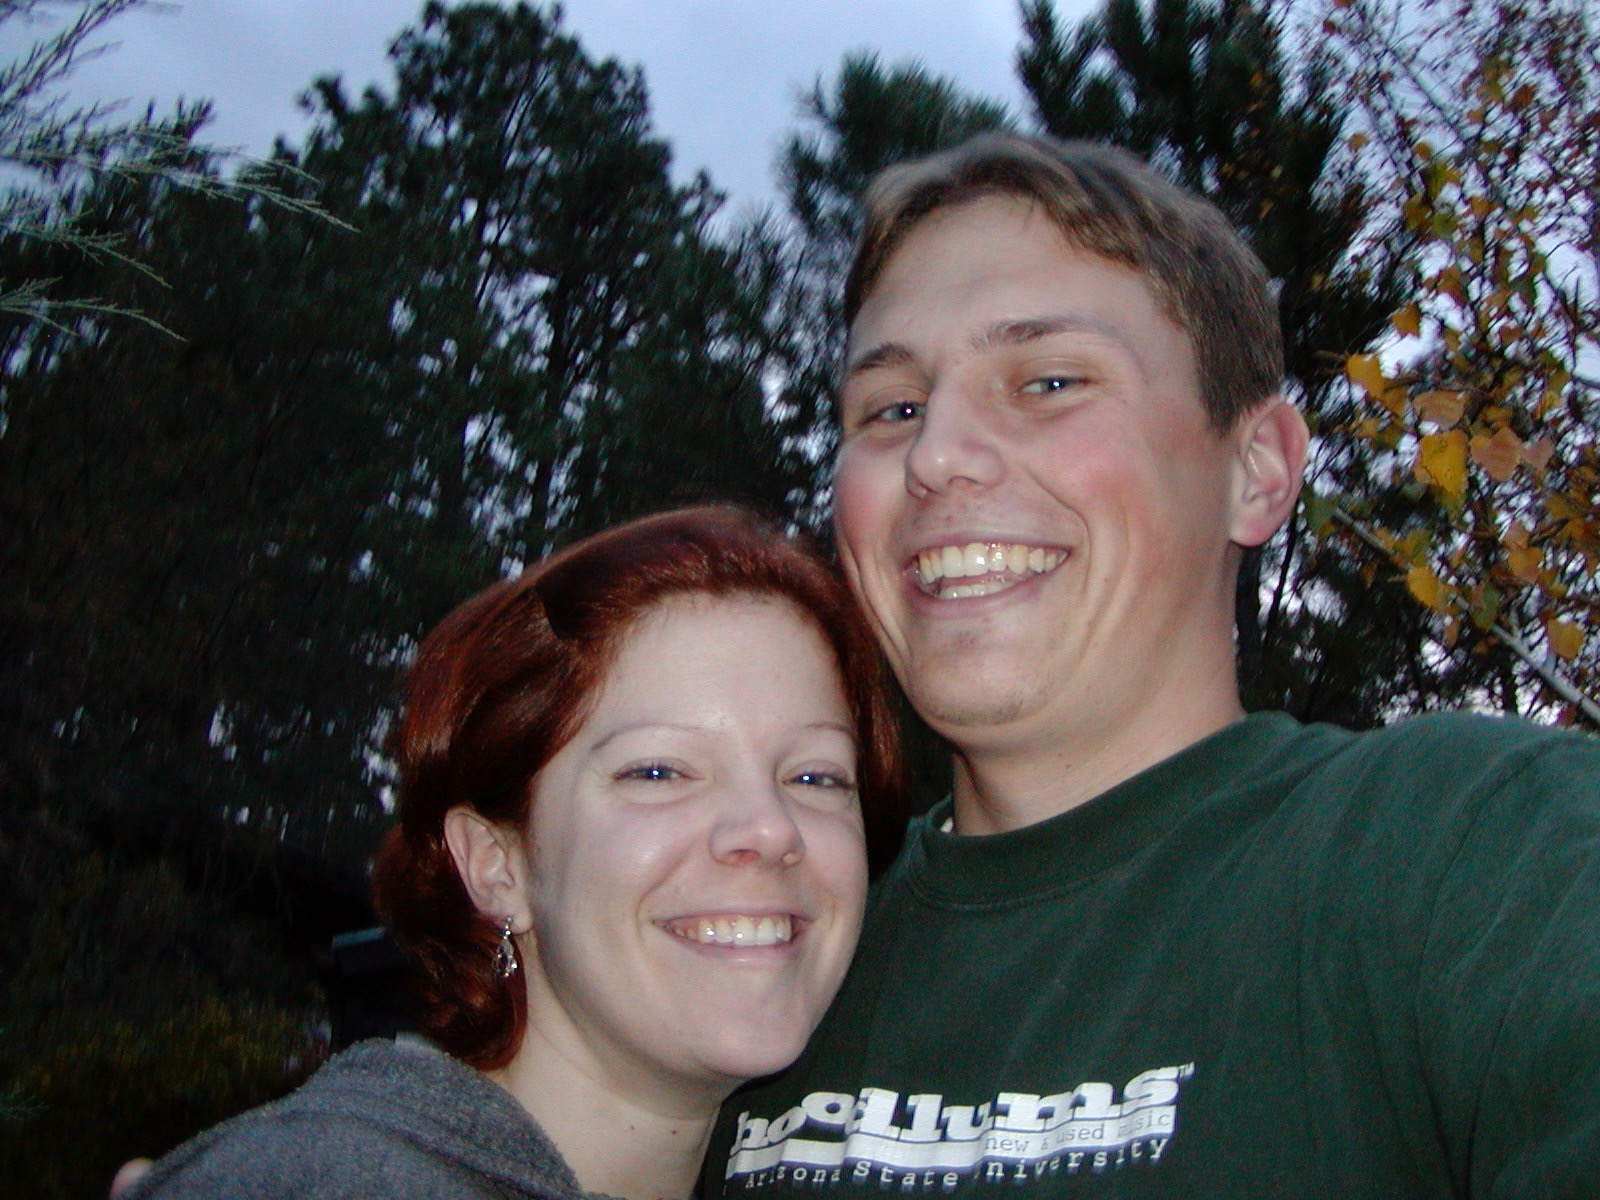 Melly and I in 2001. Note - wearing my favorite Hoodlums t-shirt.